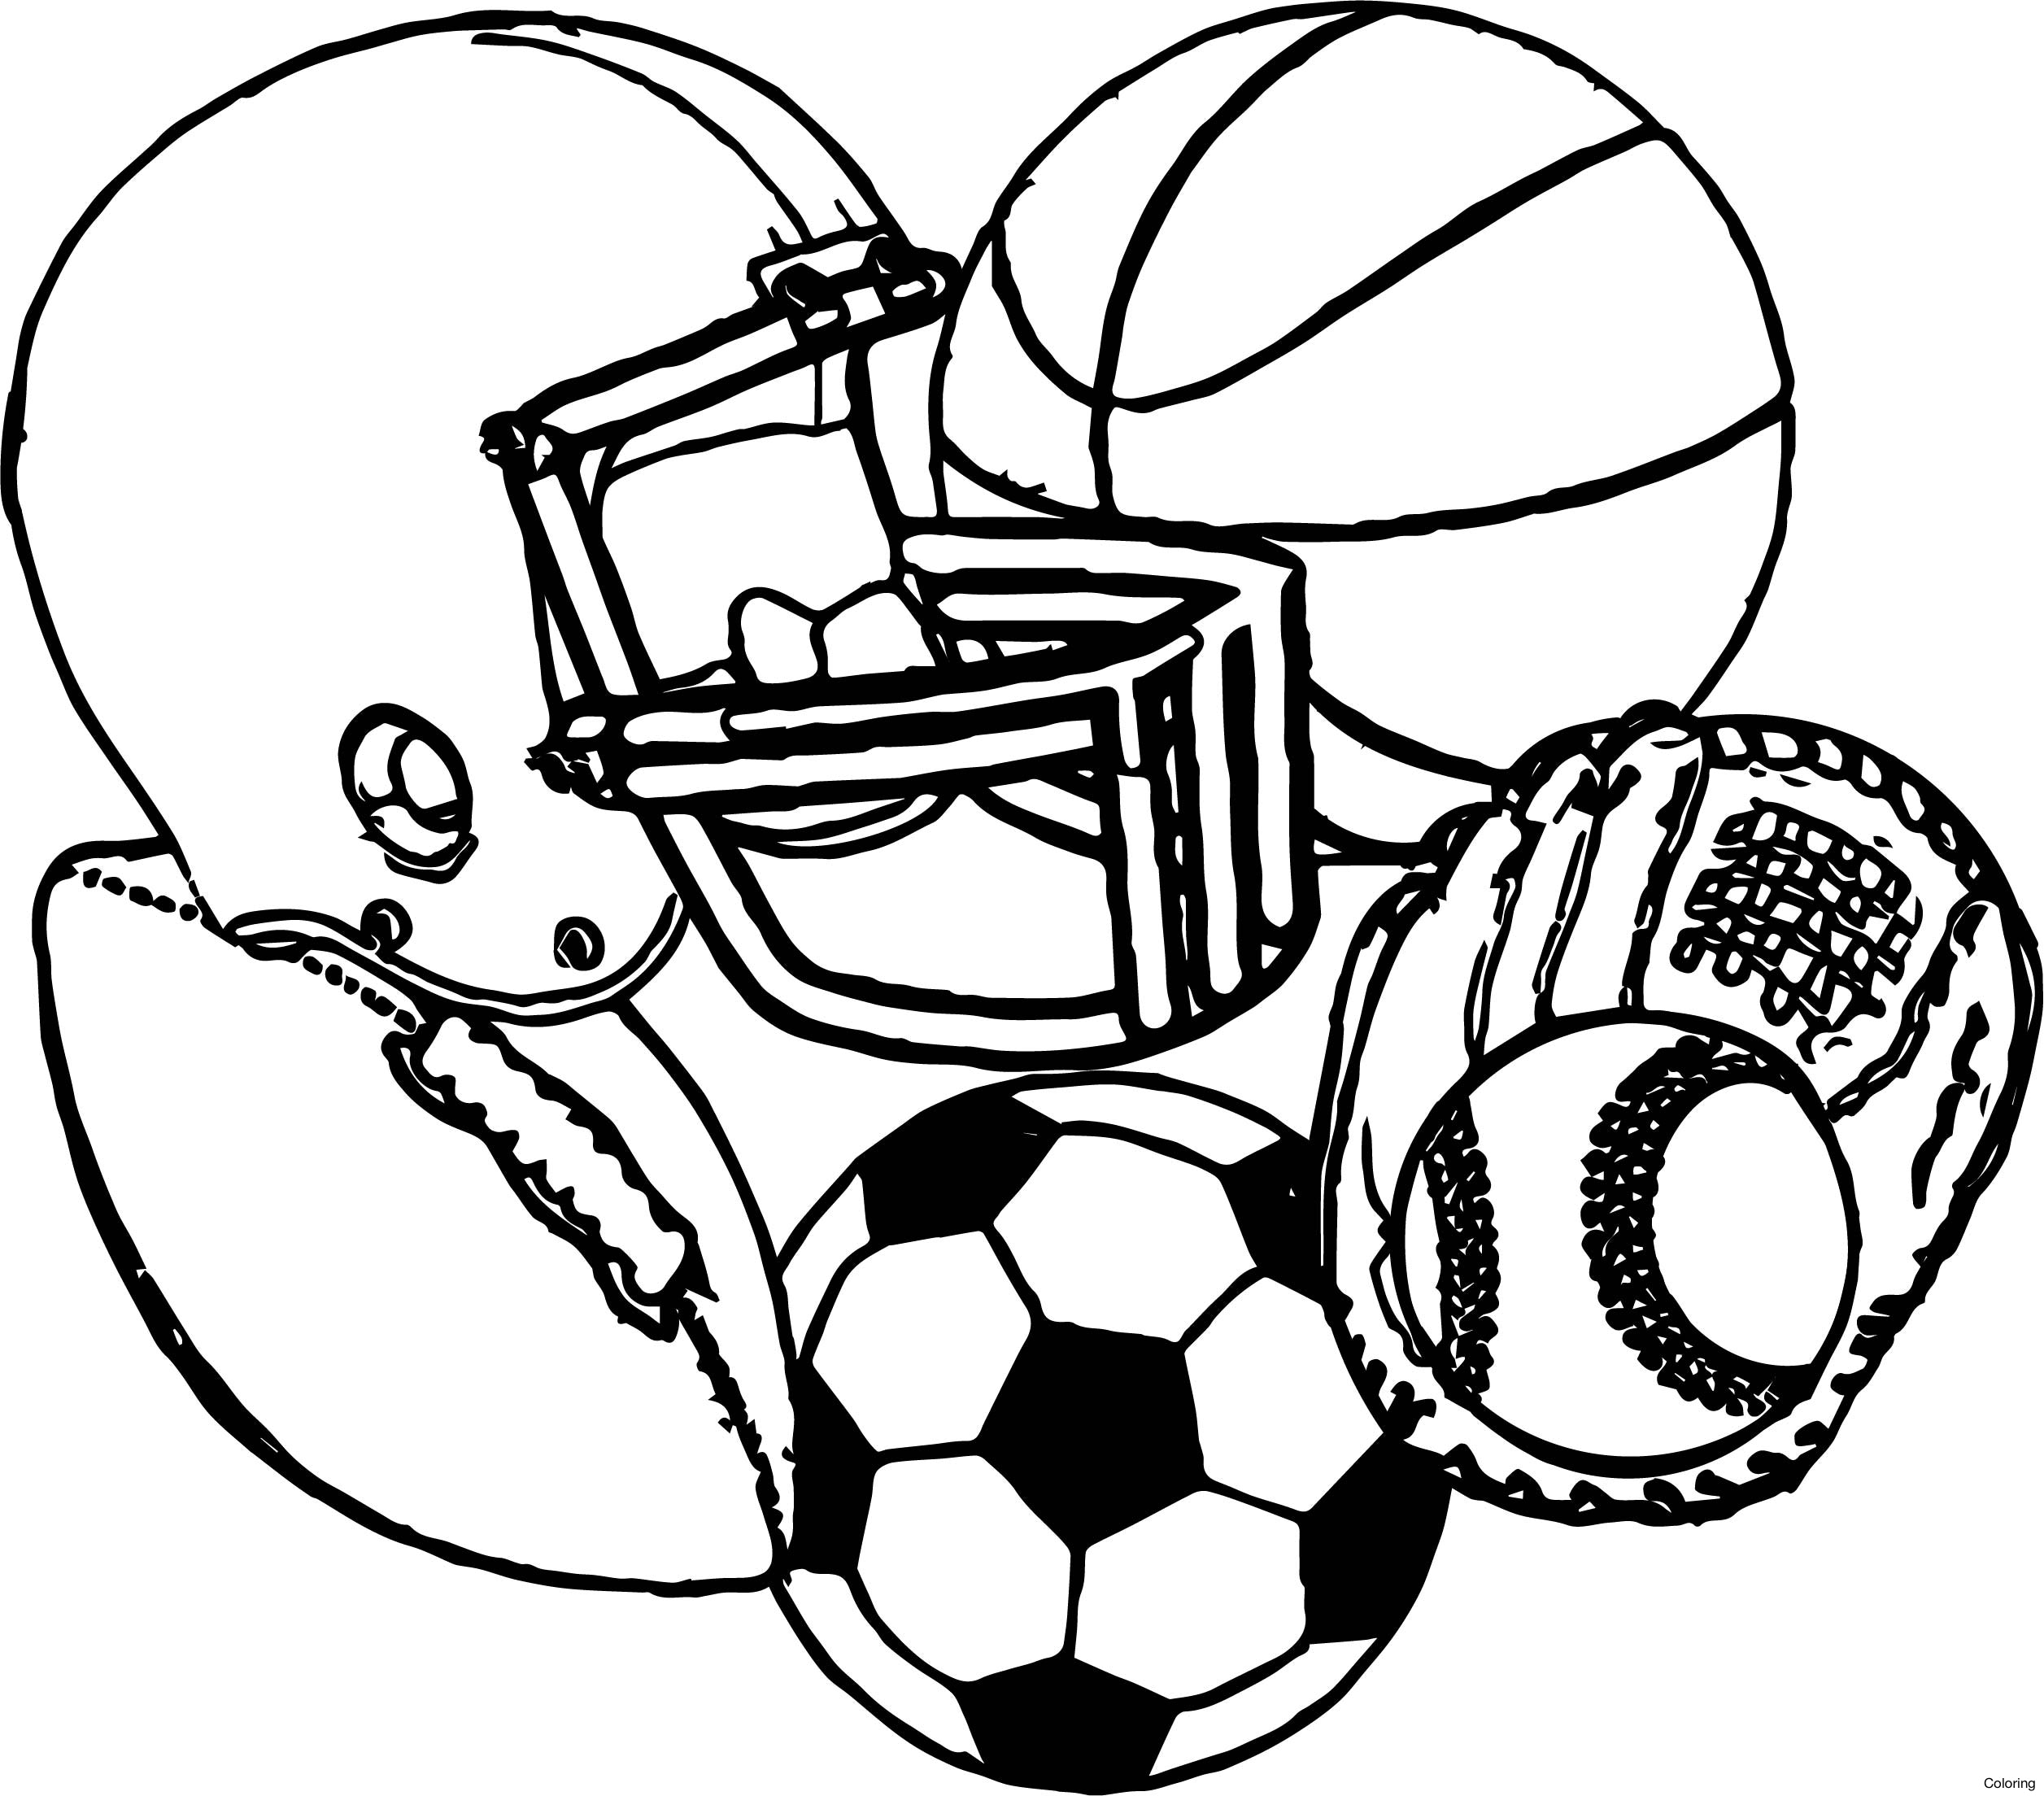 2513x2208 Sports Coloring Pages Coloring Pages Coloring Pages Sports